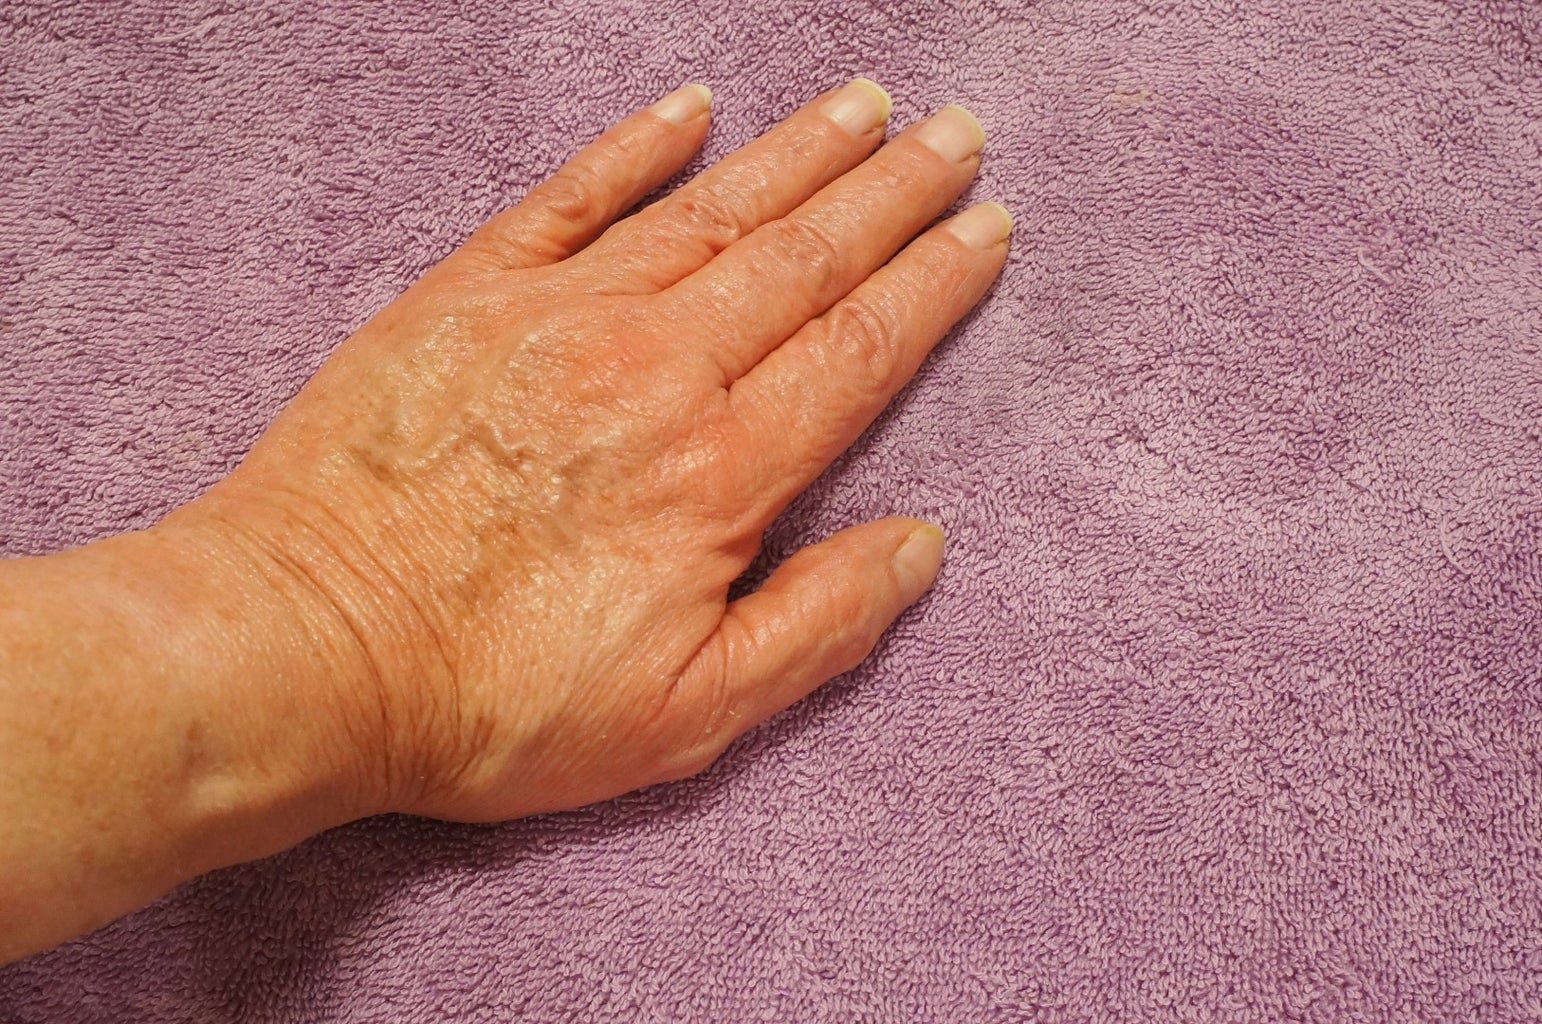 Hand and Foot Hot  Wax Treatment